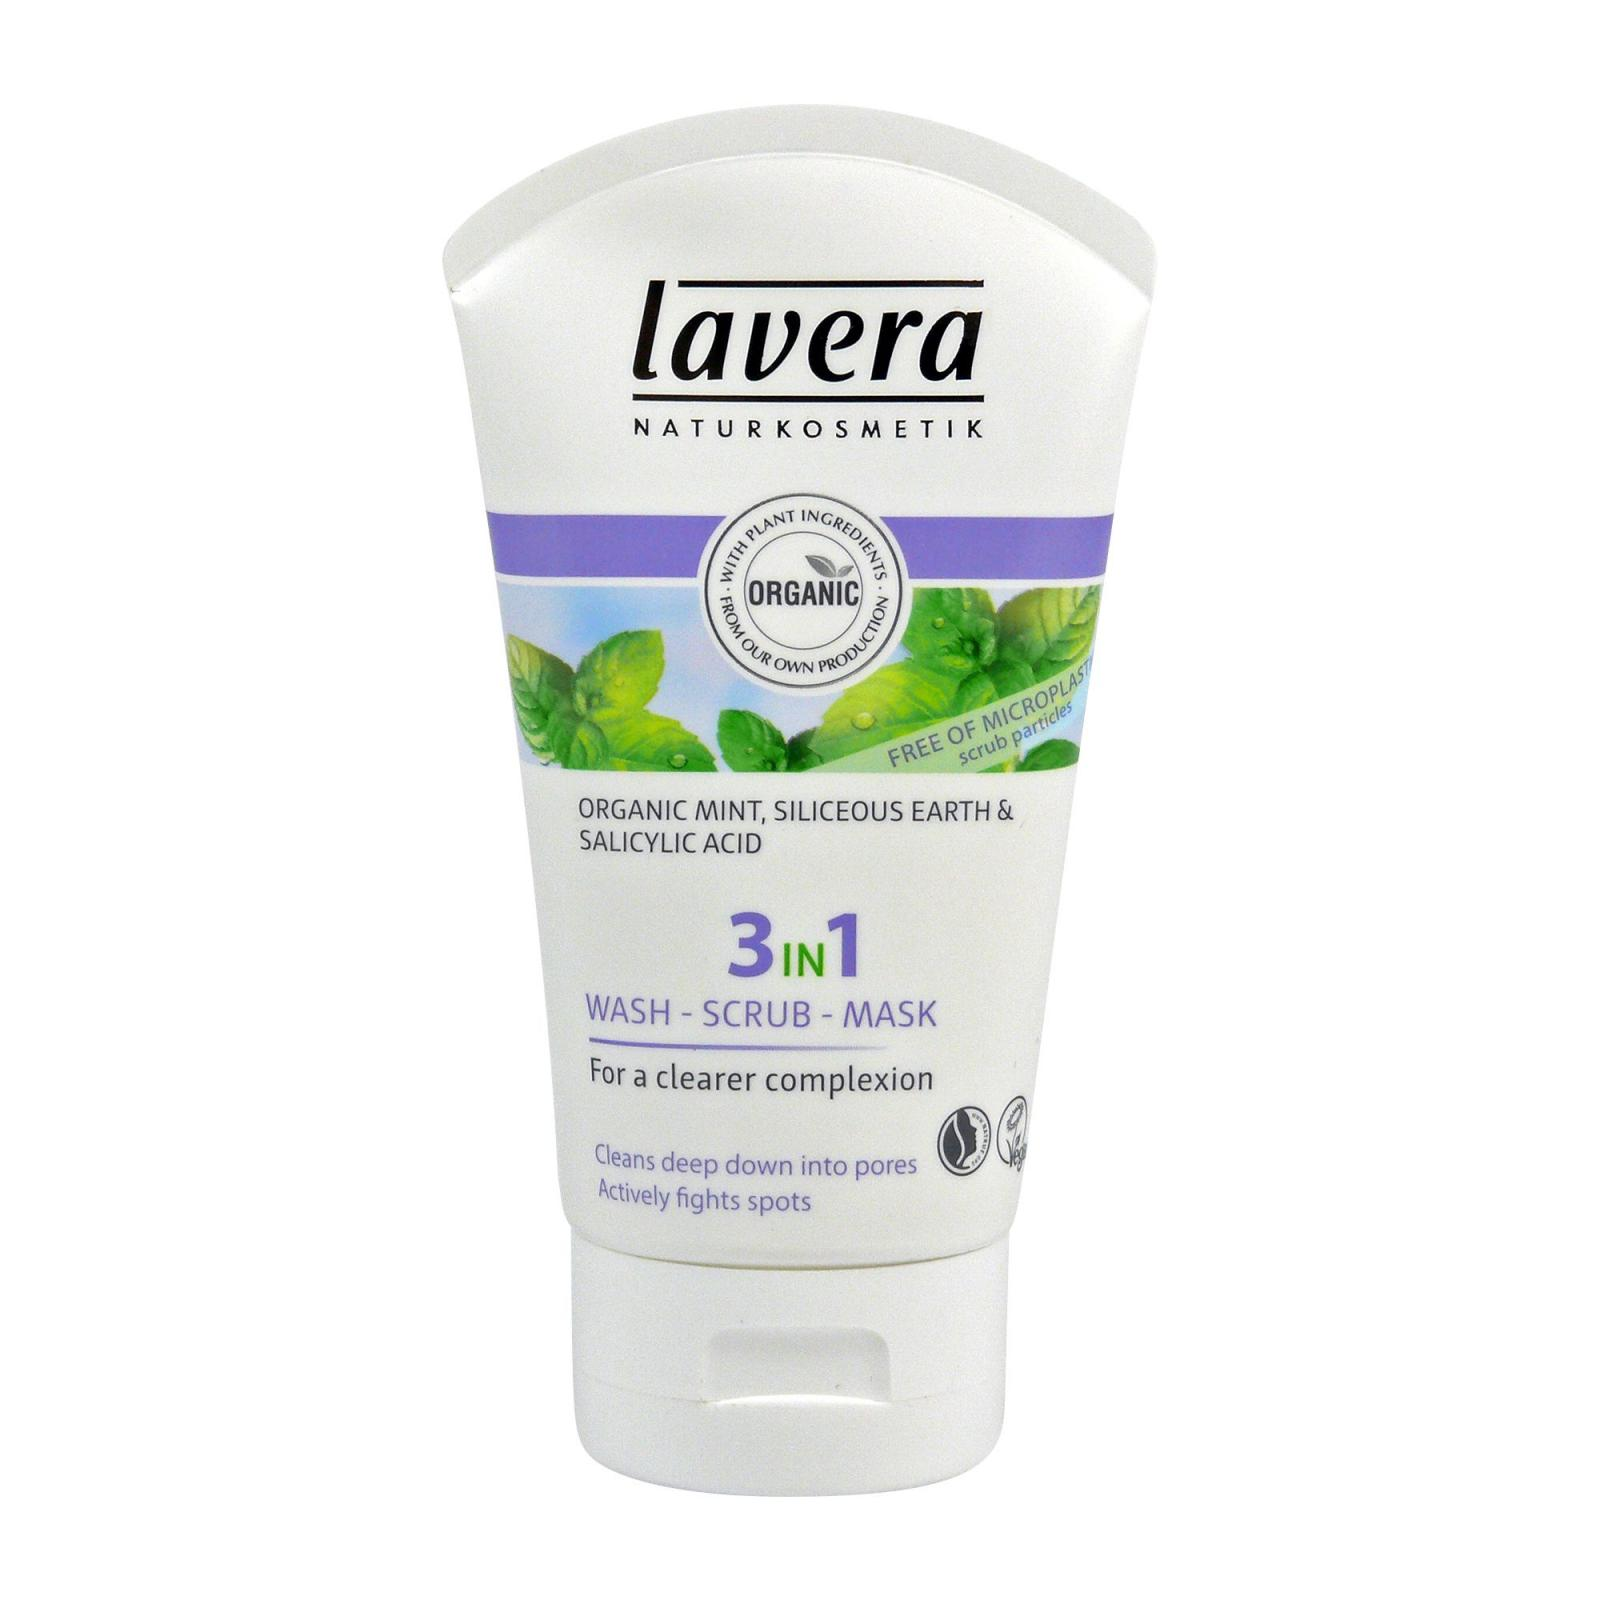 Lavera 3 v 1 očista & peeling & maska, Faces 125 ml